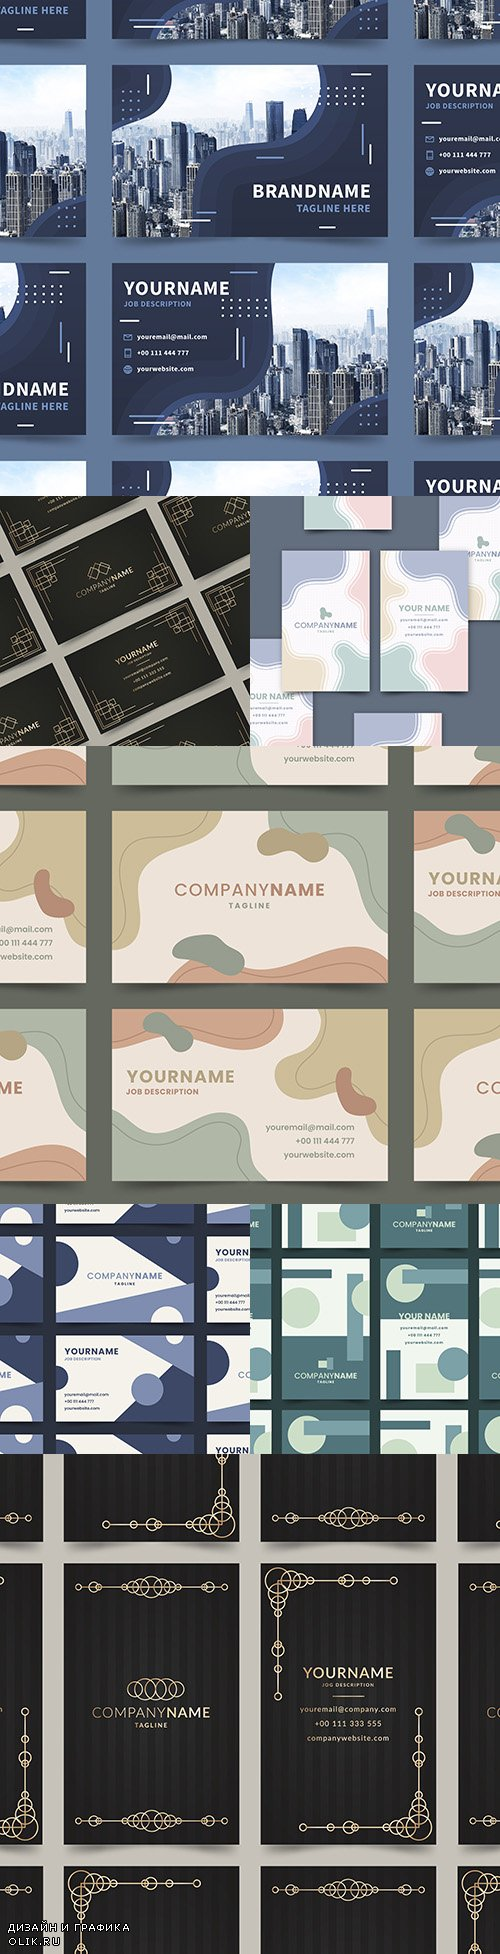 Abstract business card template minimalist design